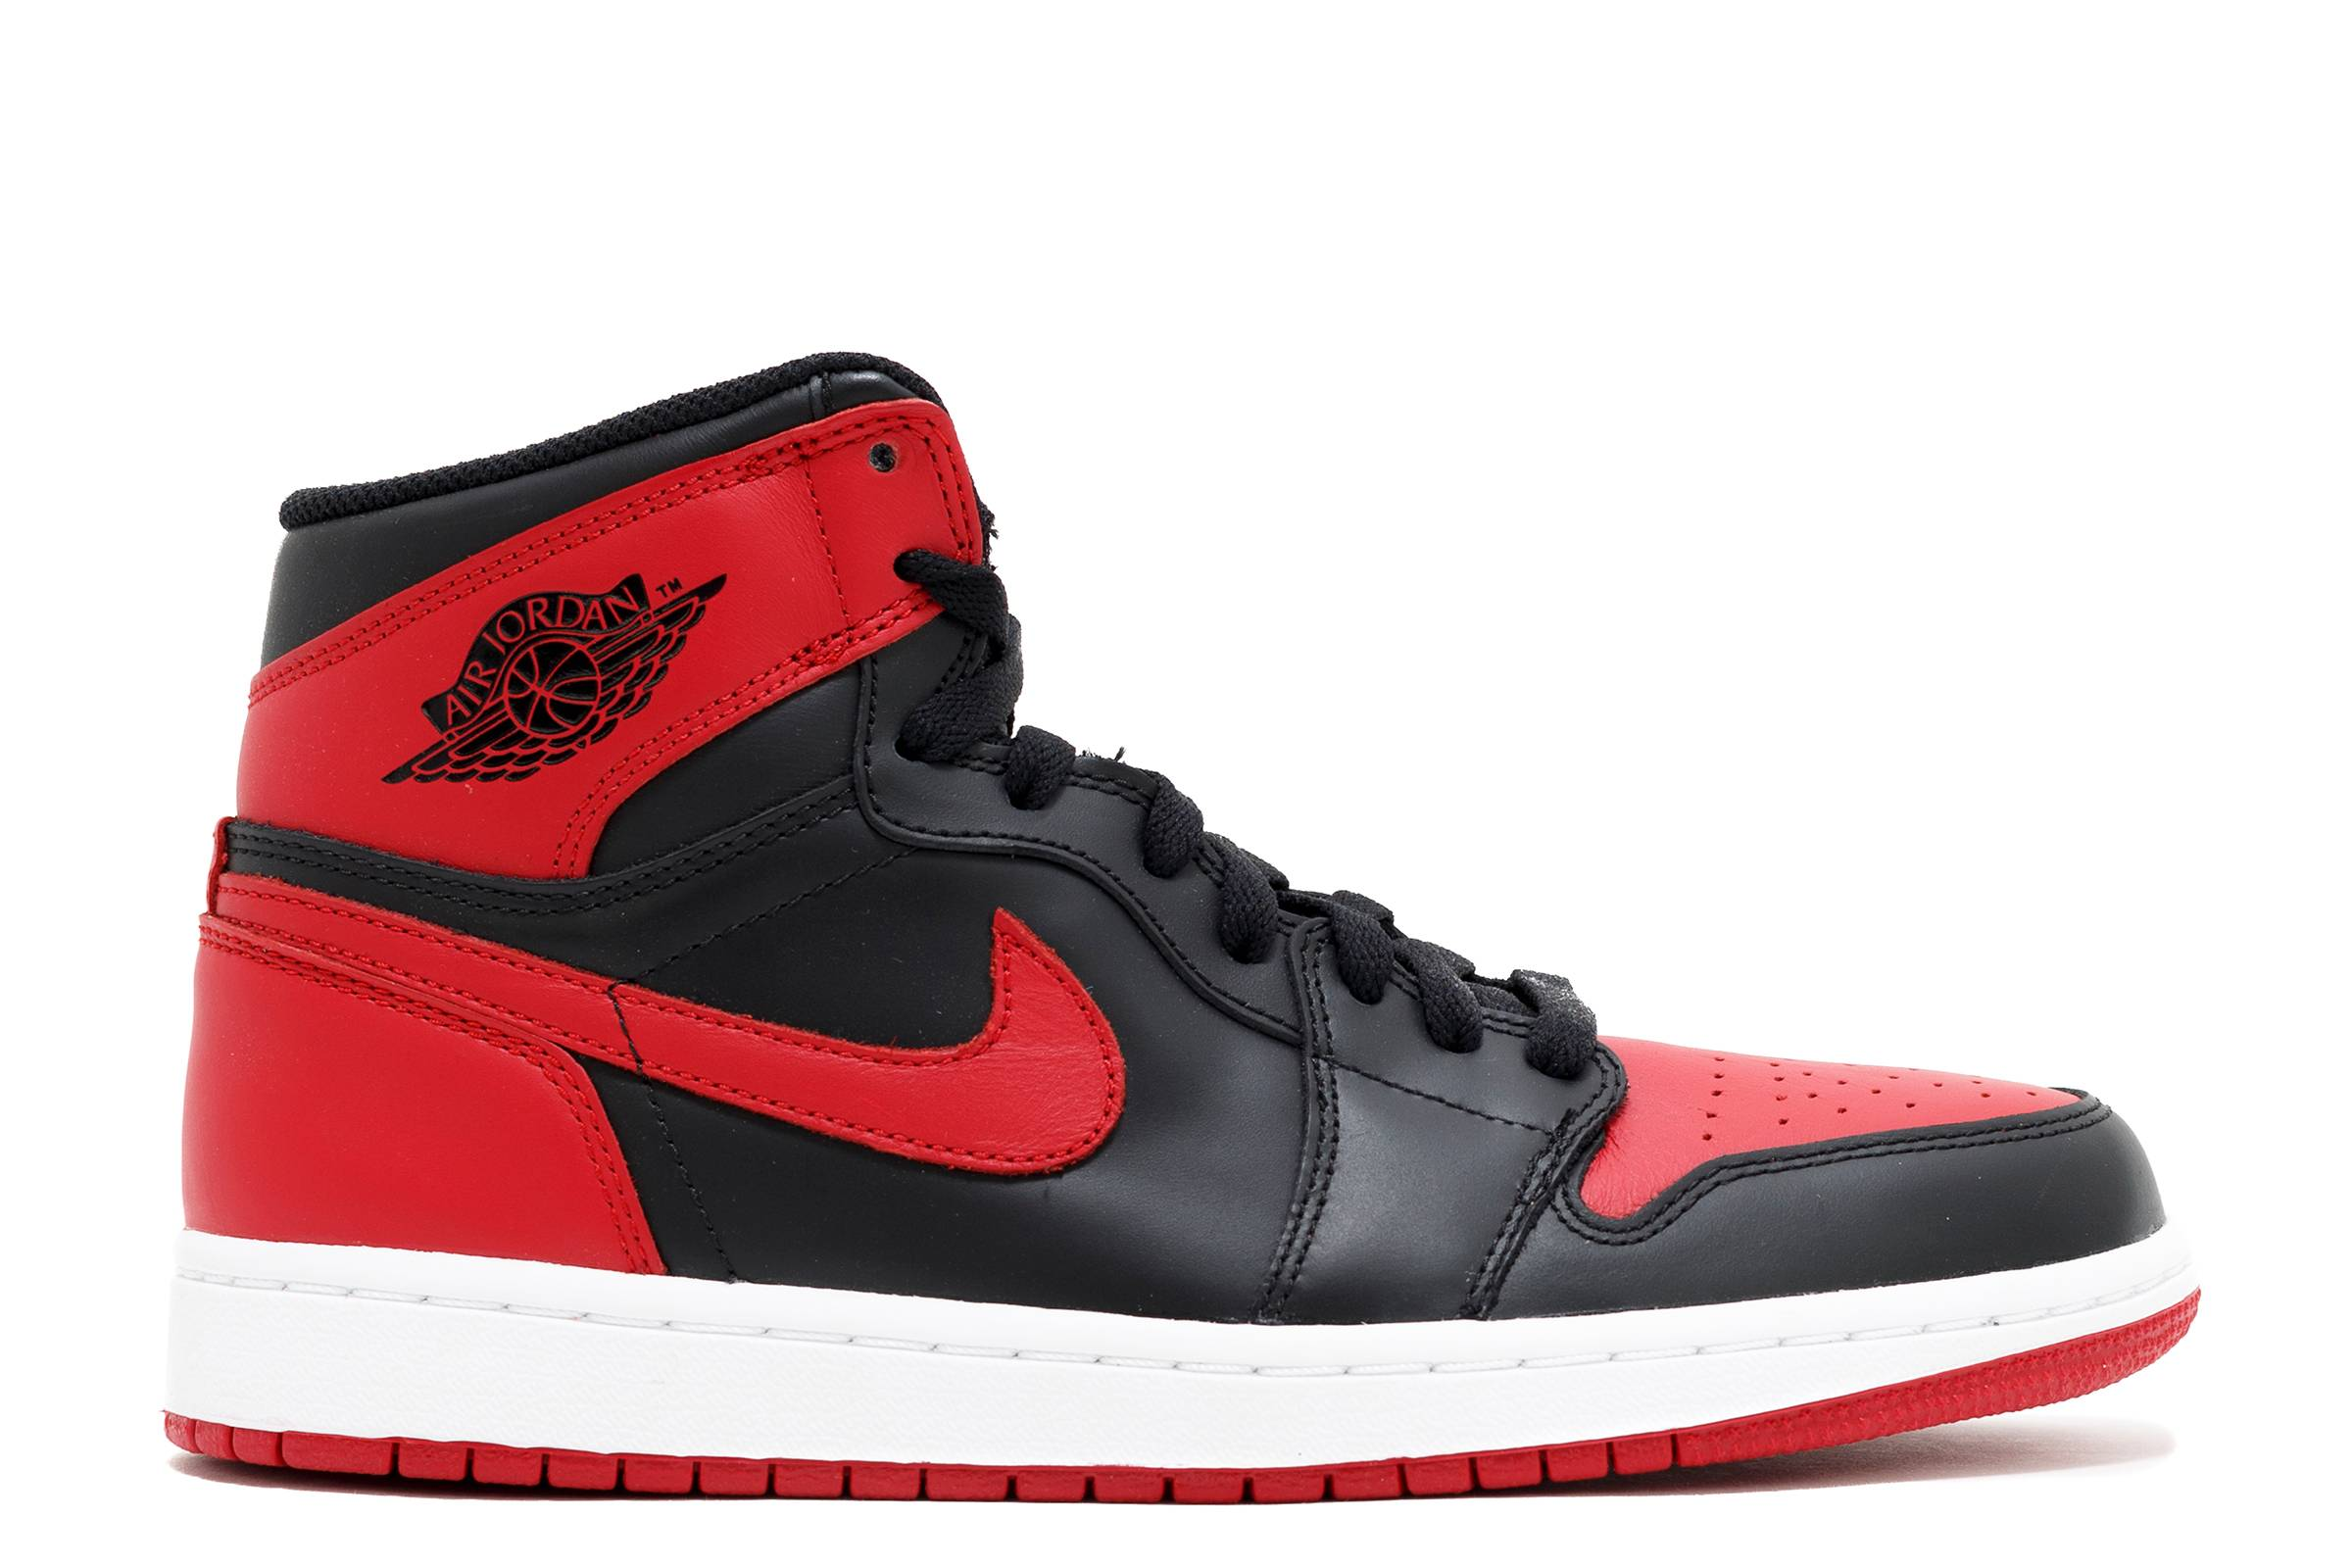 1cee6b16a5d7 The One That Started It All  A History of the Jordan 1 - Jordan 1 ...